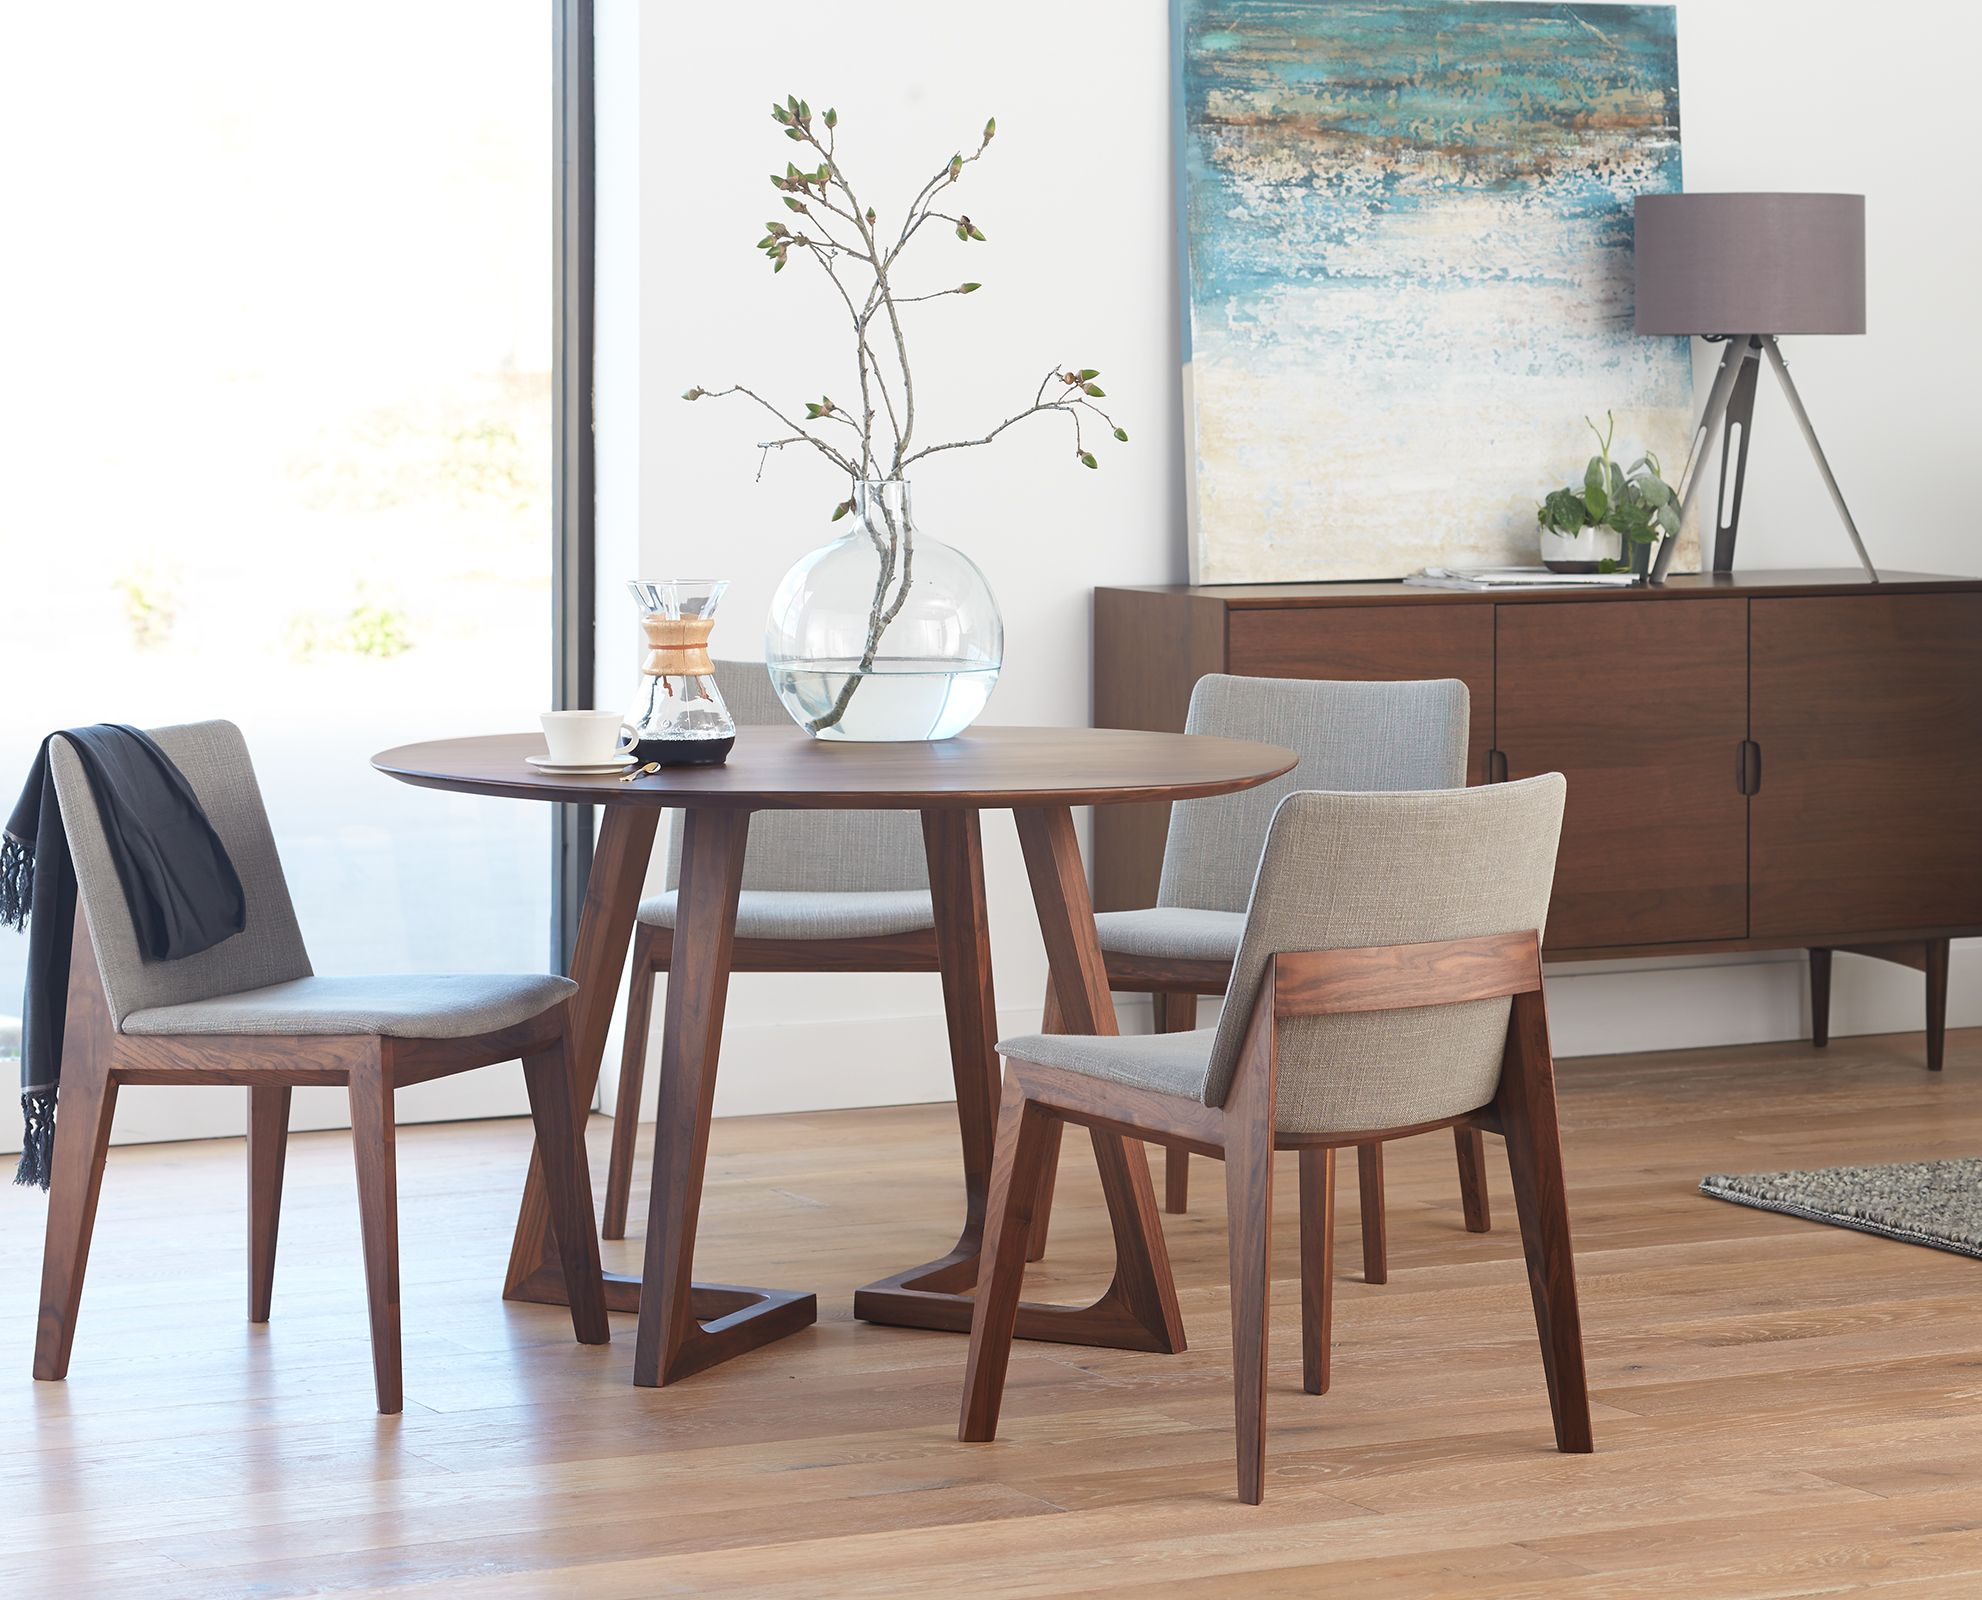 round table and chairs from dania condo pinterest rounding